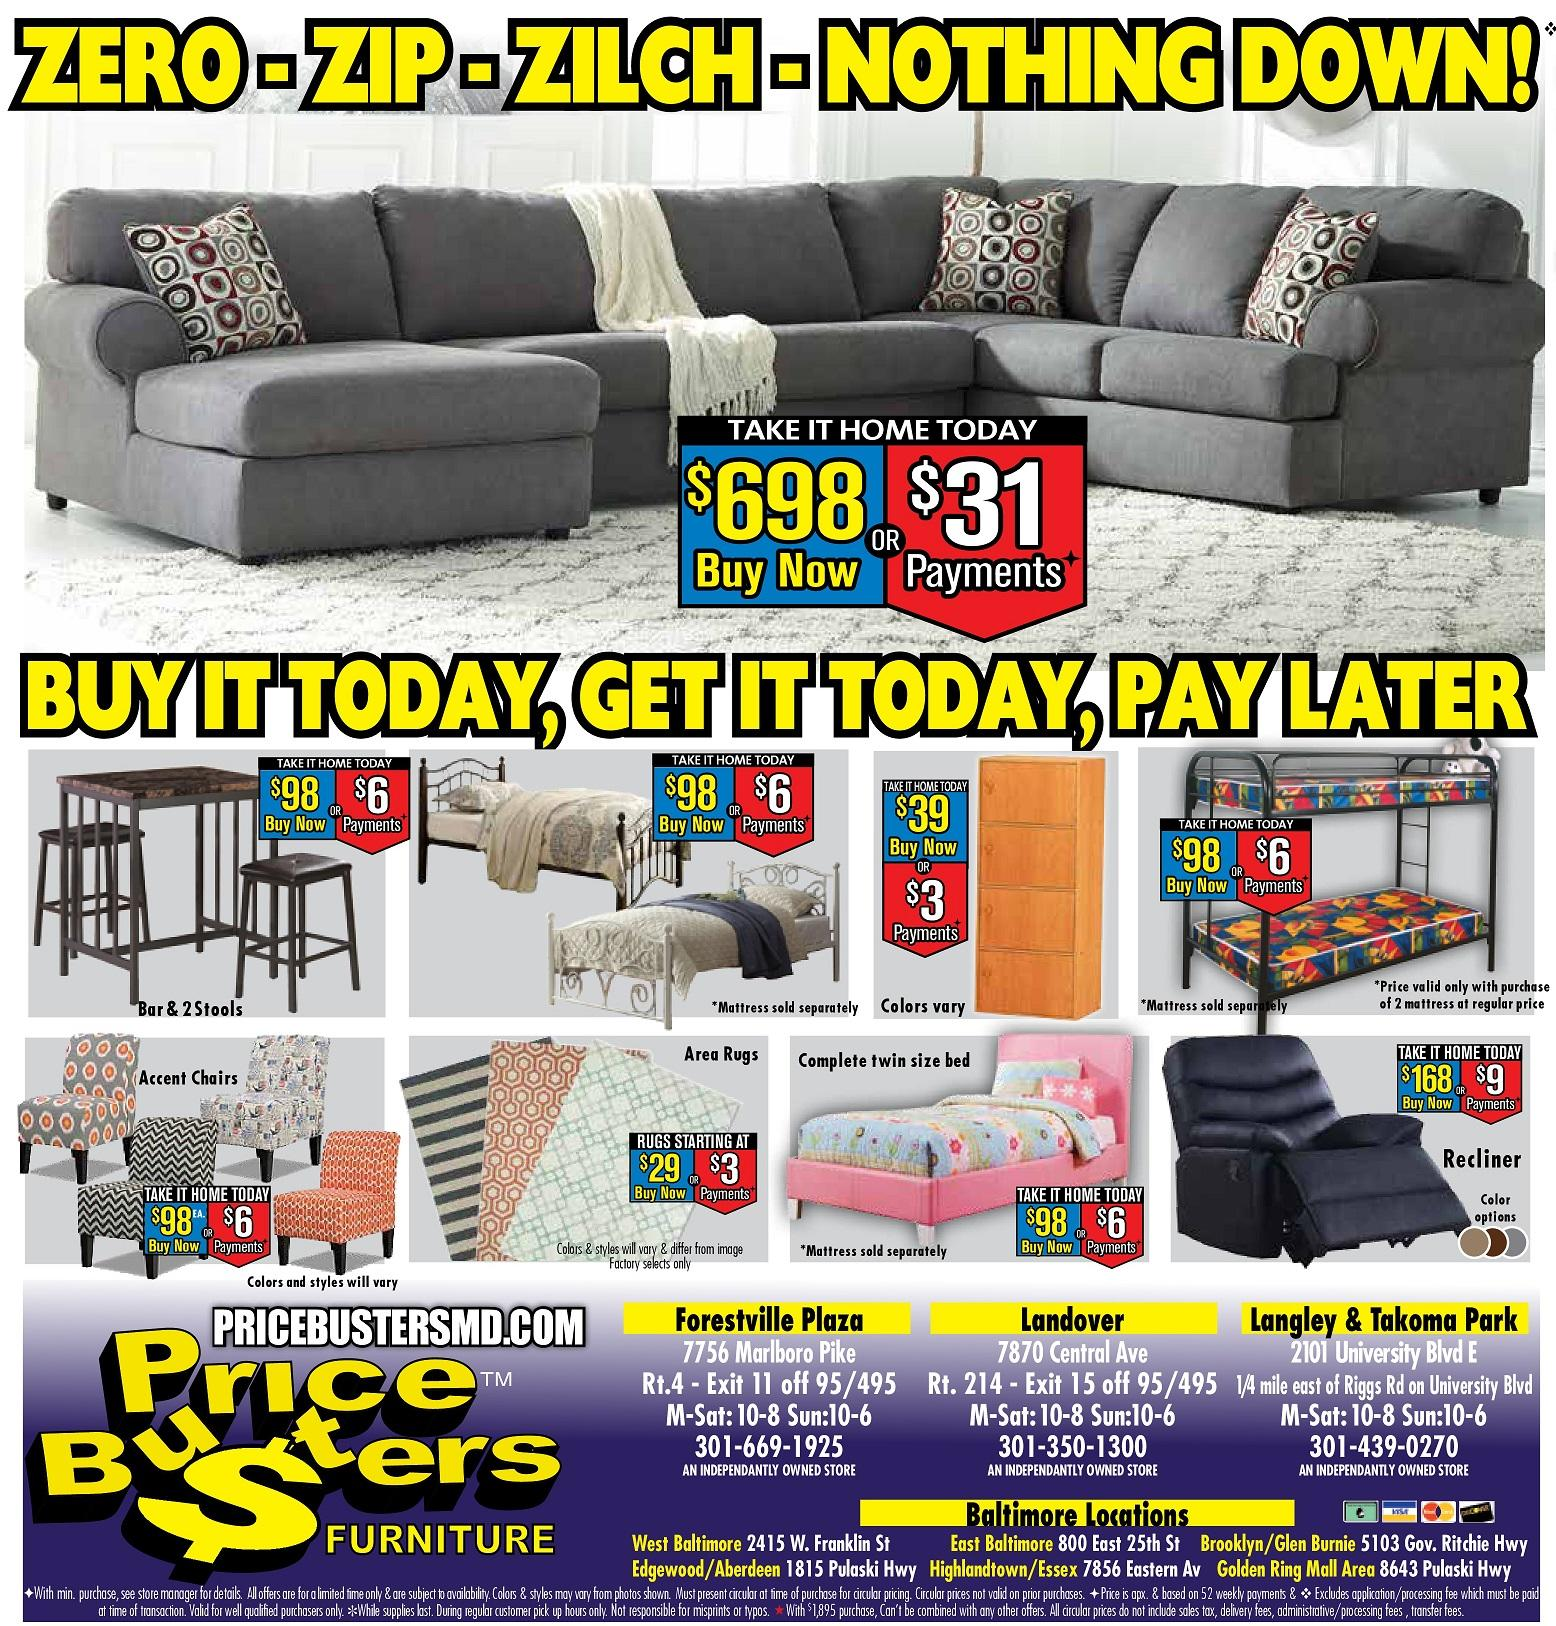 Price Busters Discount Furniture In Hyattsville Md 301 439 0